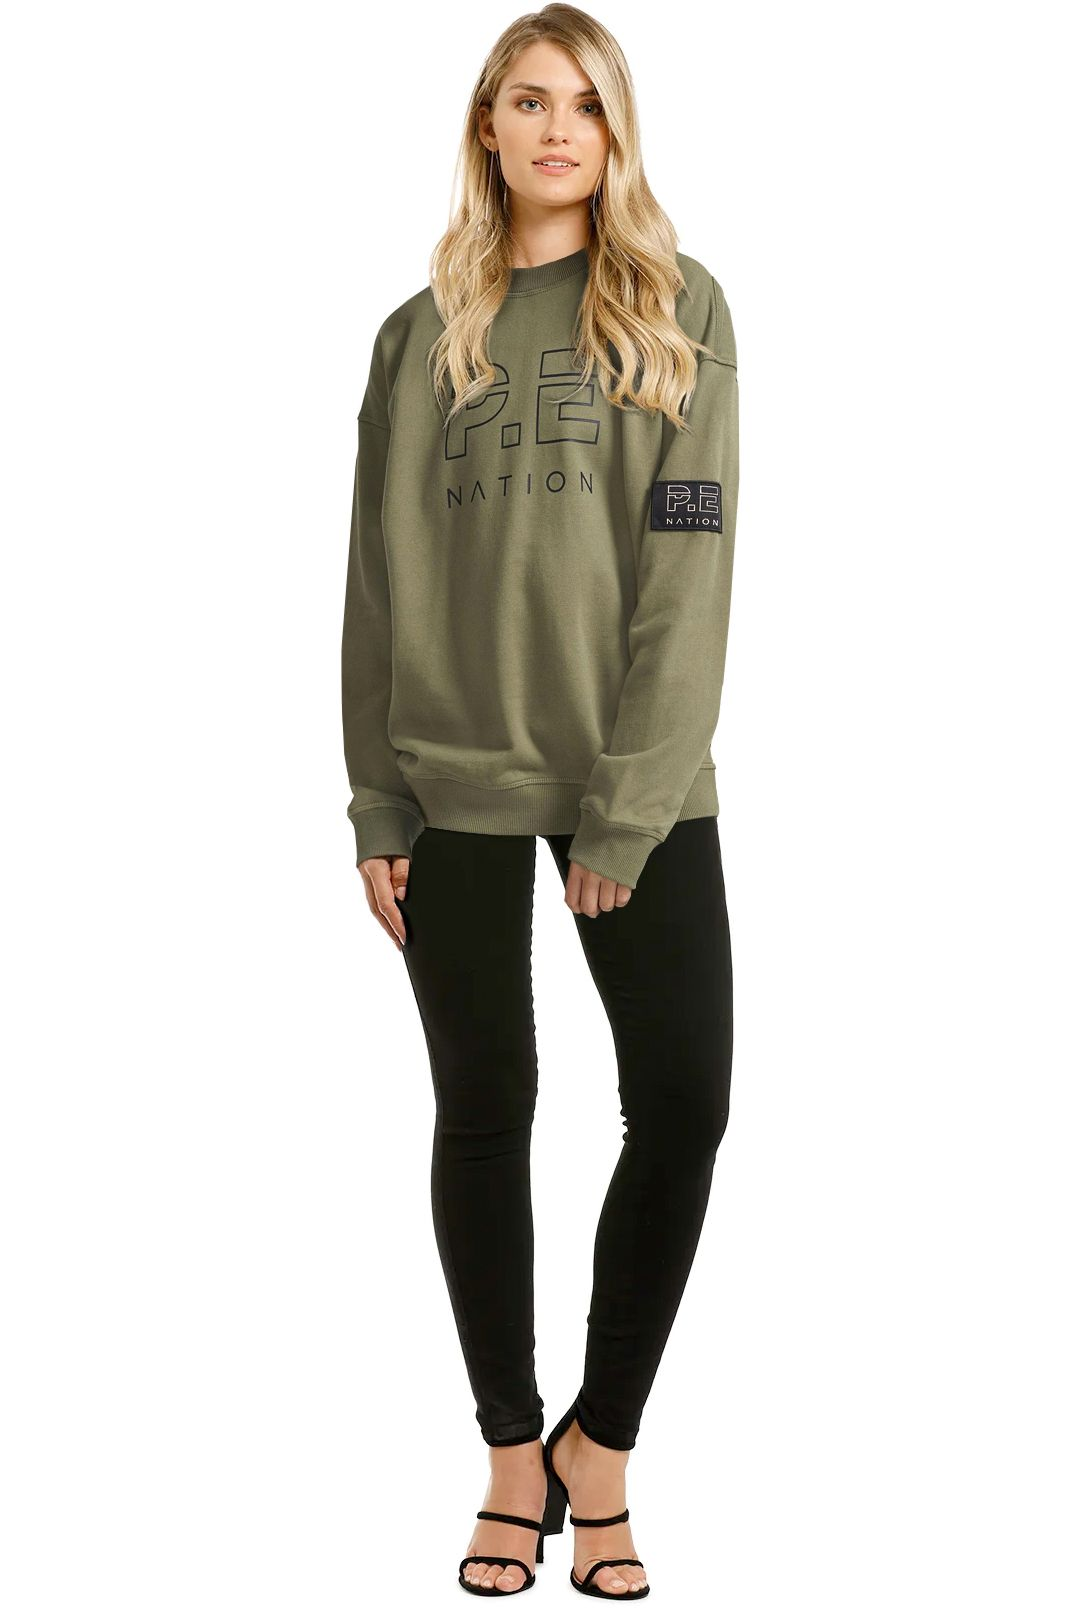 PE-Nation-Heads-Up-Sweat-Olive-Front